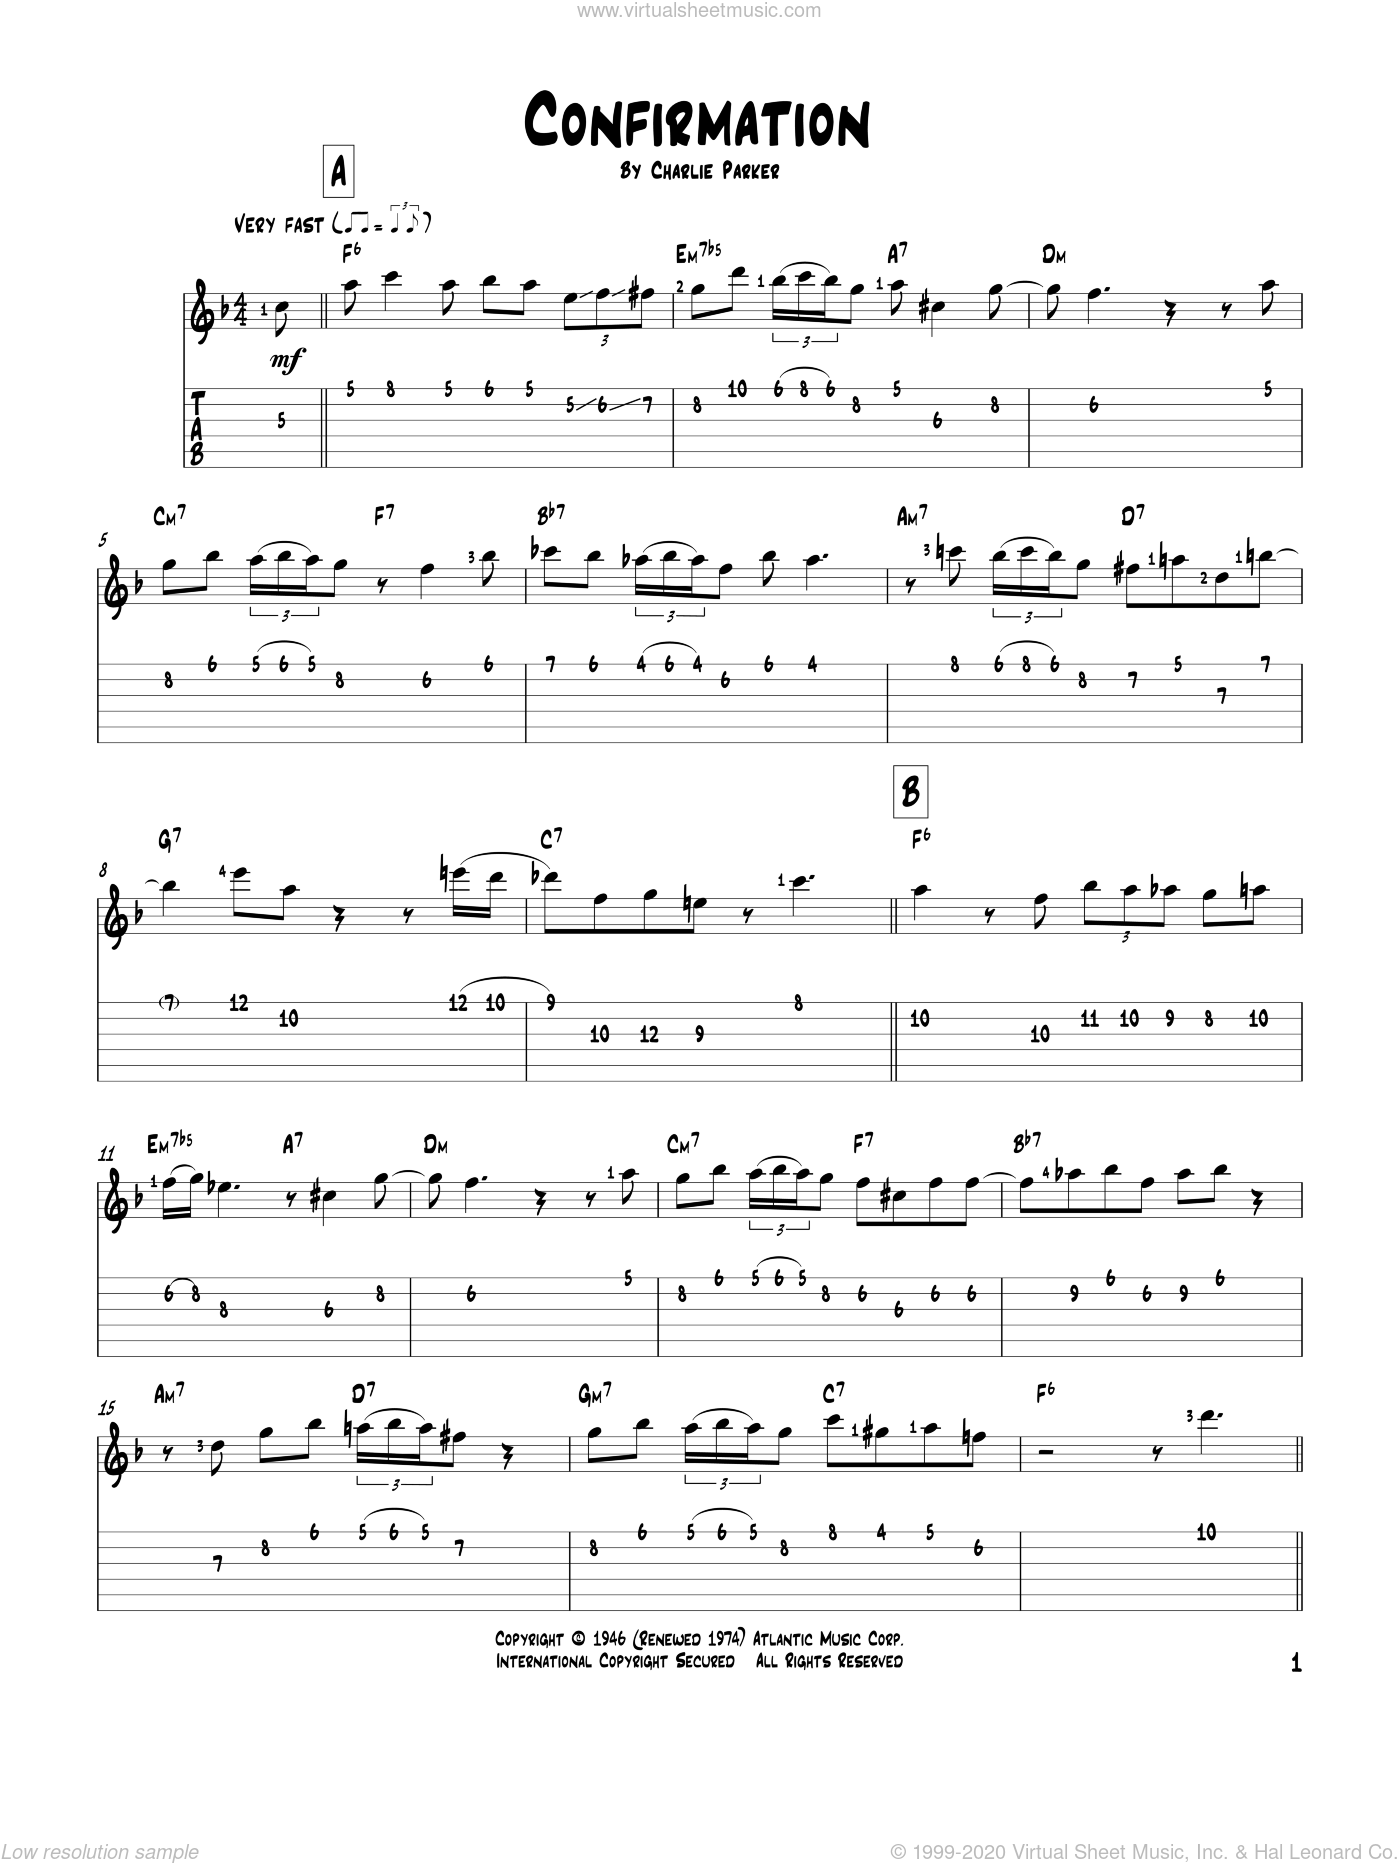 Parker Confirmation Sheet Music For Guitar Solo Pdf